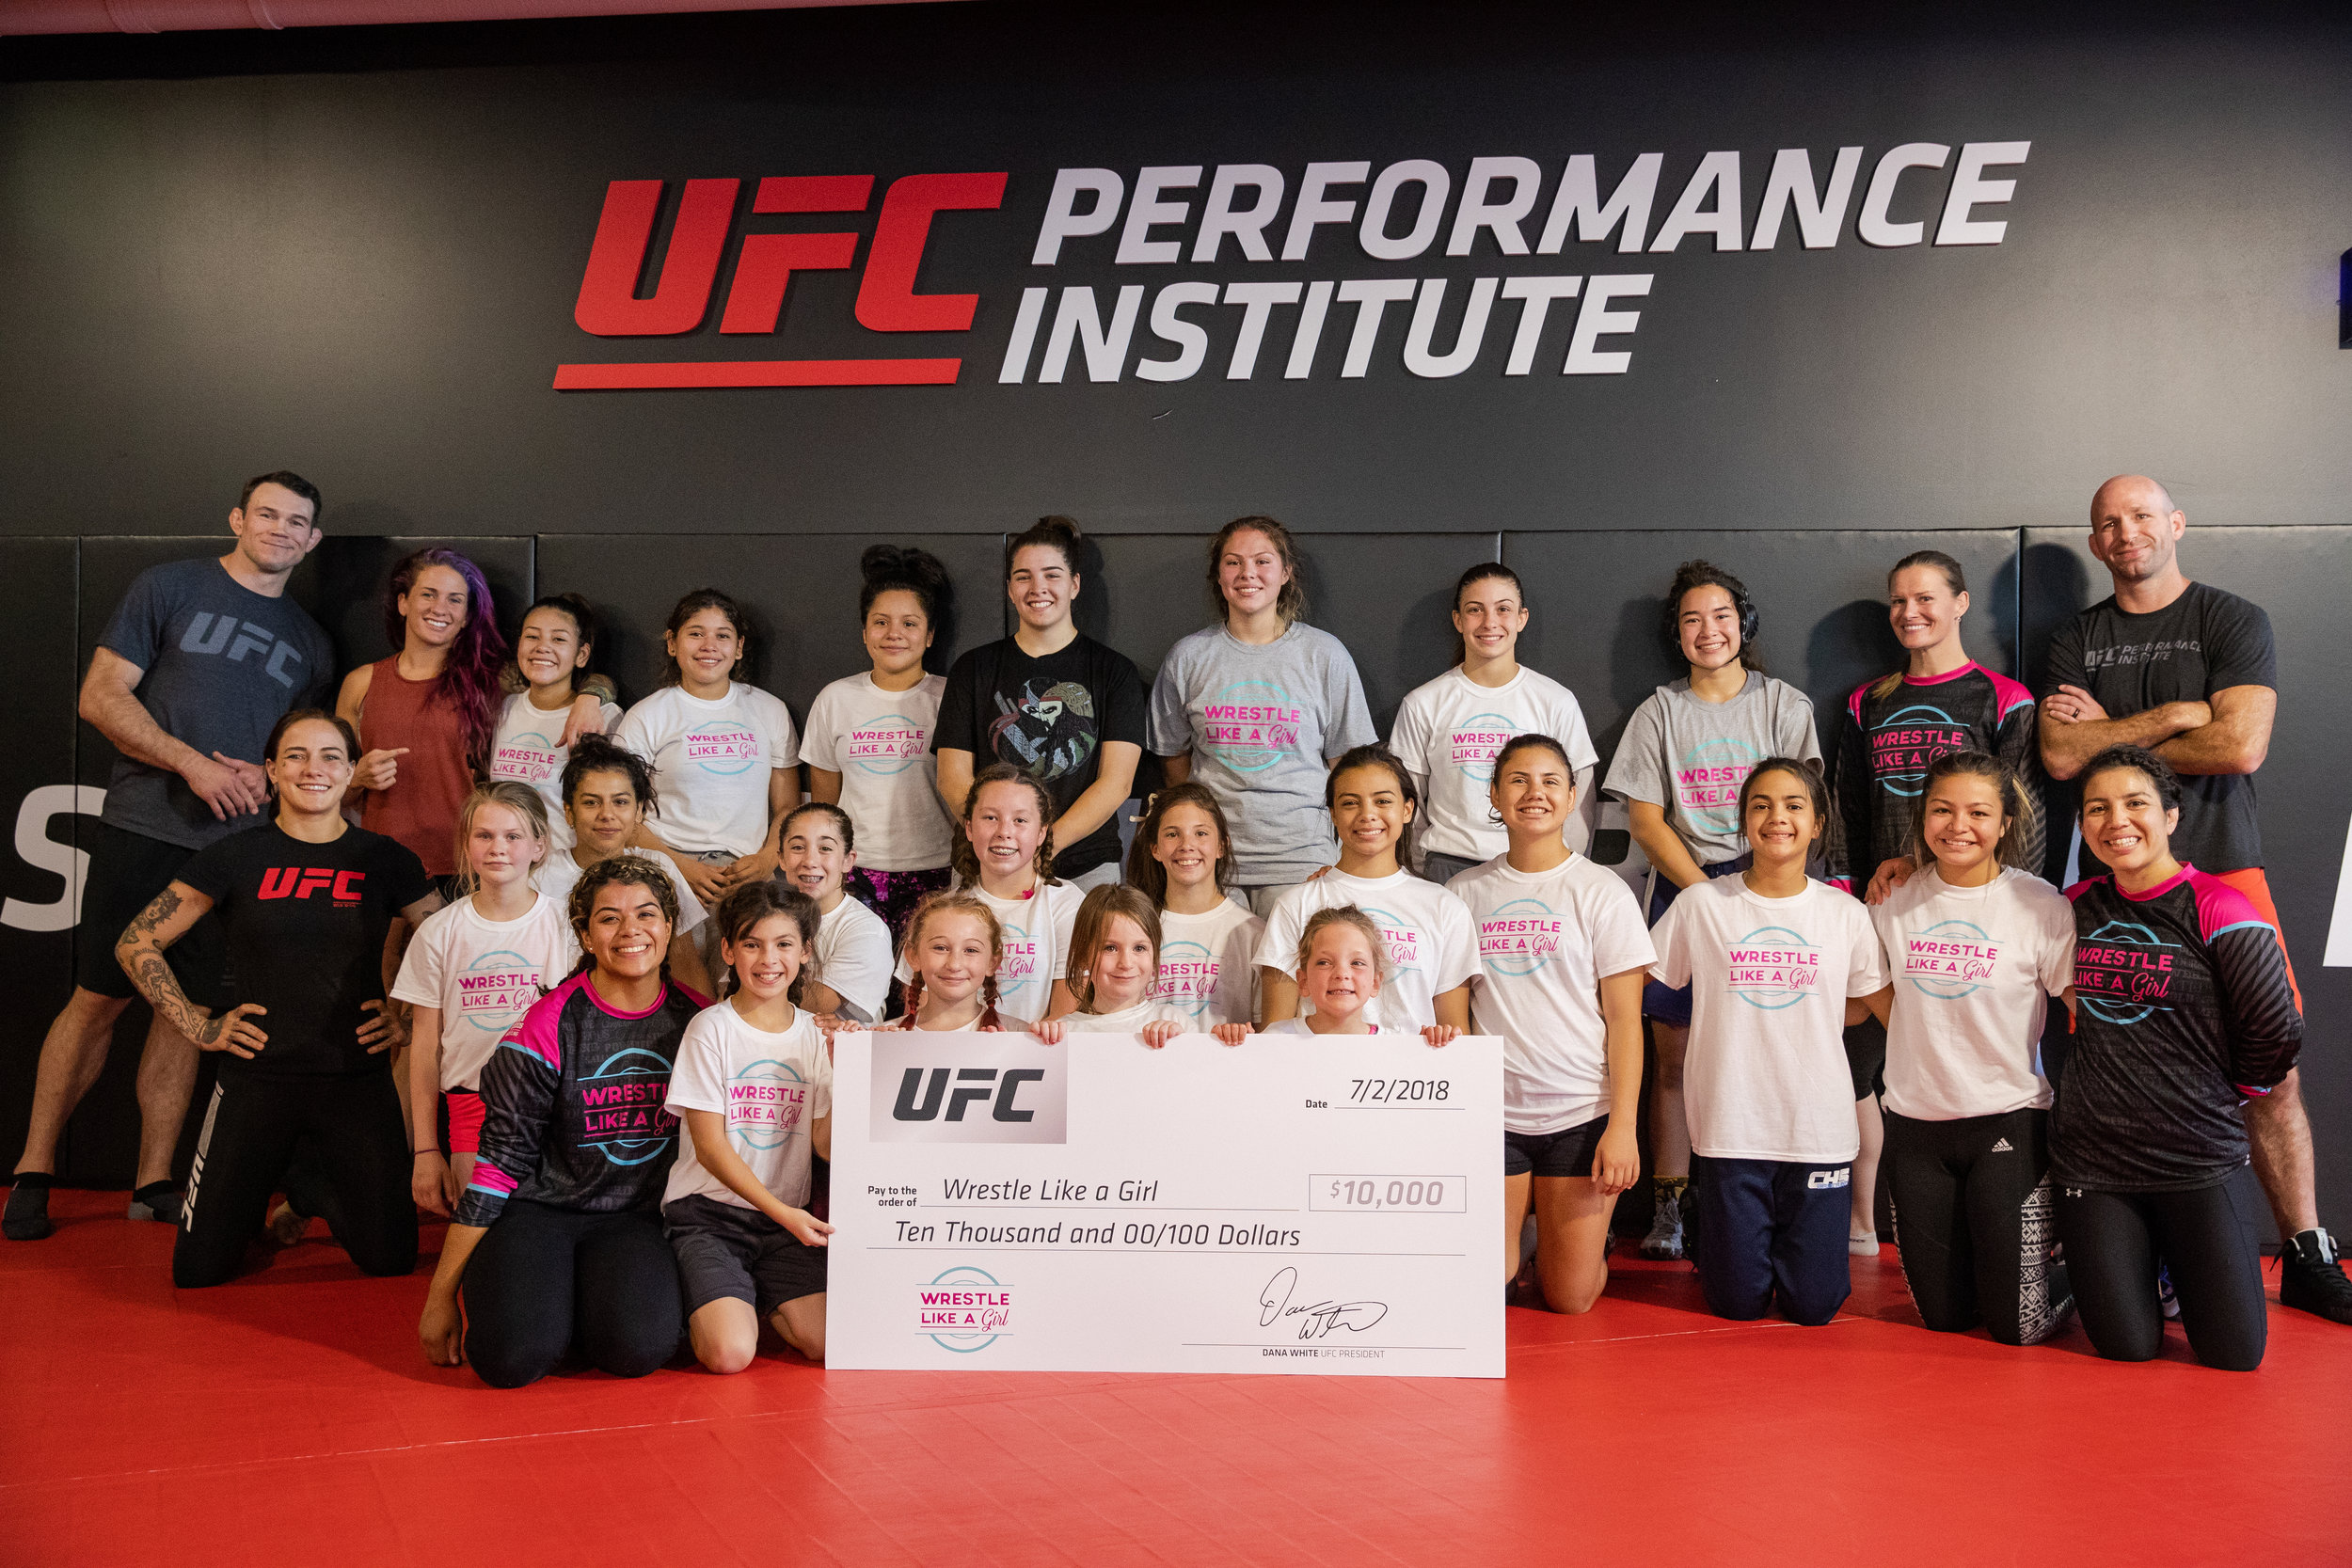 """UFC, Wrestle Like a Girl team up for Empowerment Camp and Clinic at UFC Performance Institute - MMAJunkie.com - By: John Morgan and Ken Hathaway 